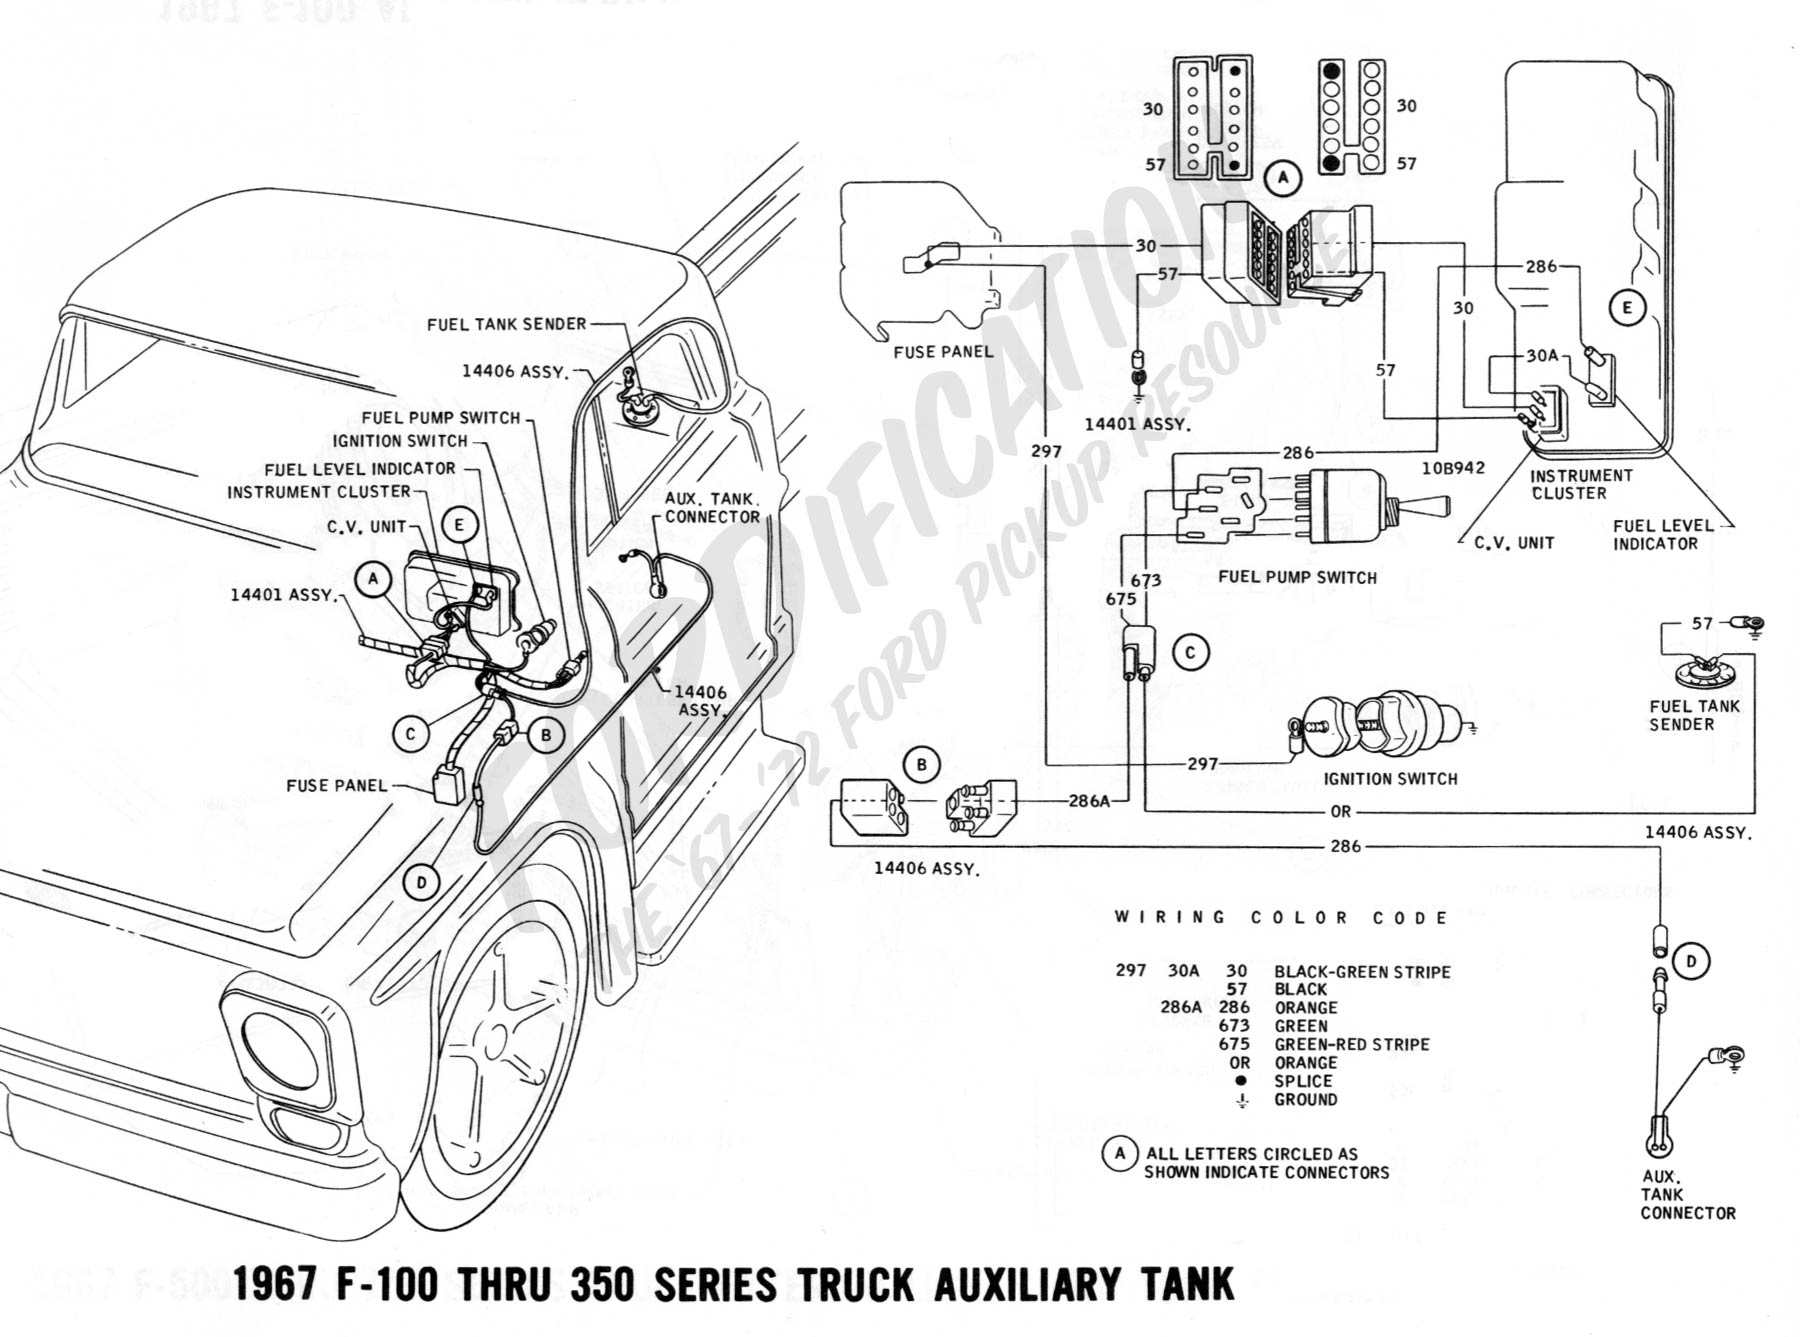 hight resolution of 76 ford f 250 wiring diagram wiring resources rh fujipa ukgm org 1978 ford truck wiring diagram 1977 ford f 250 wiring diagram